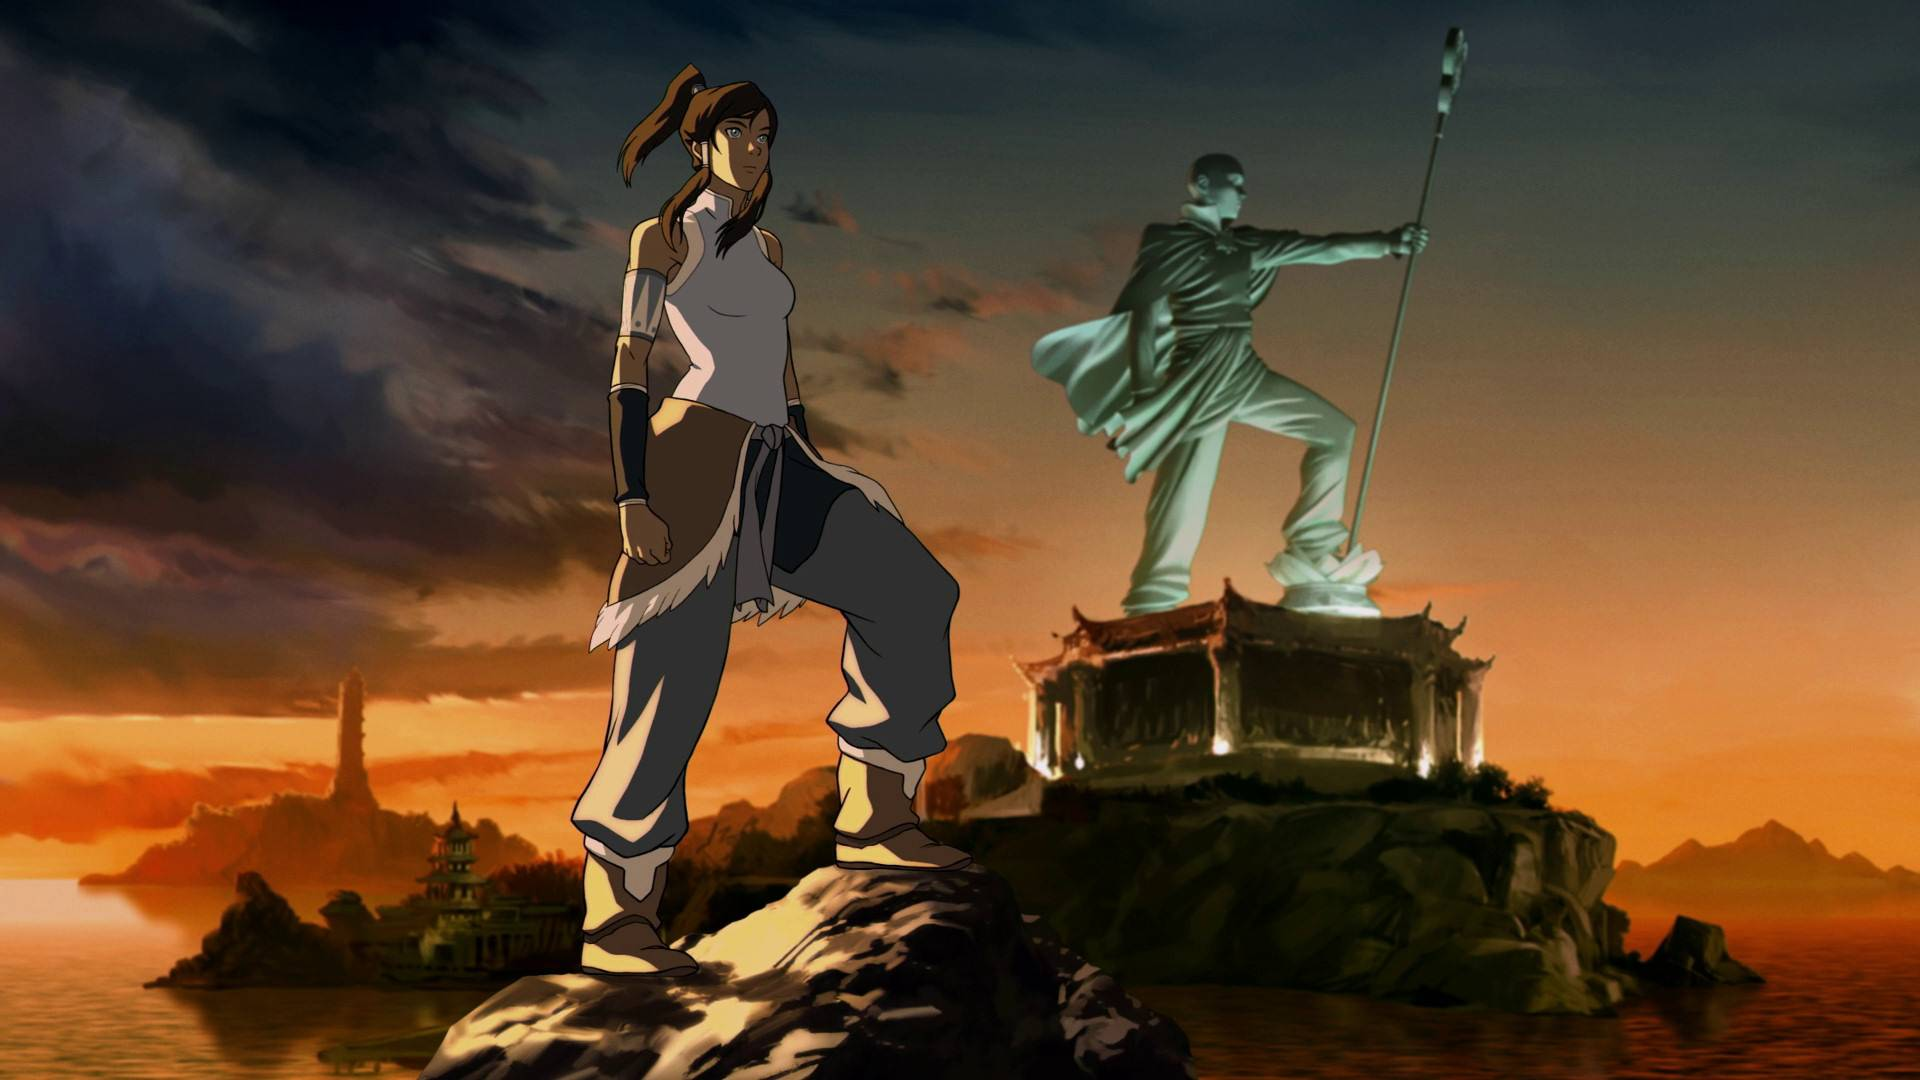 legend of korra download game